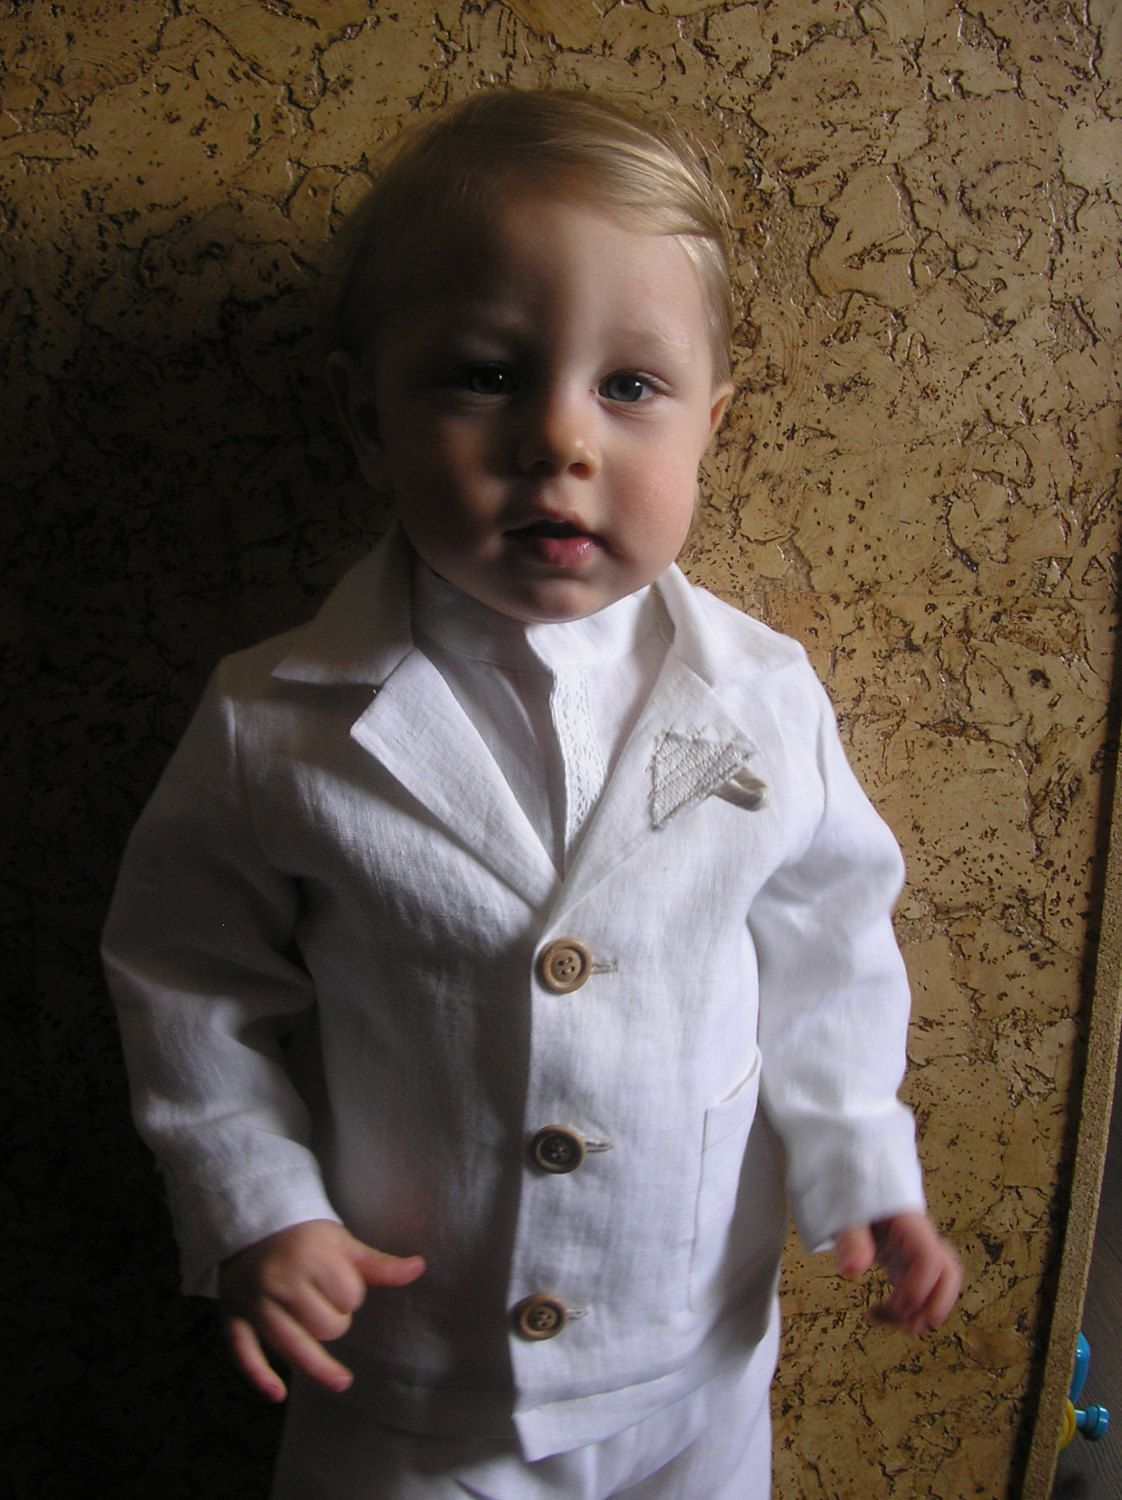 Newborn Boy Linen Clothing Size Select A Size 9 12 Months Baby